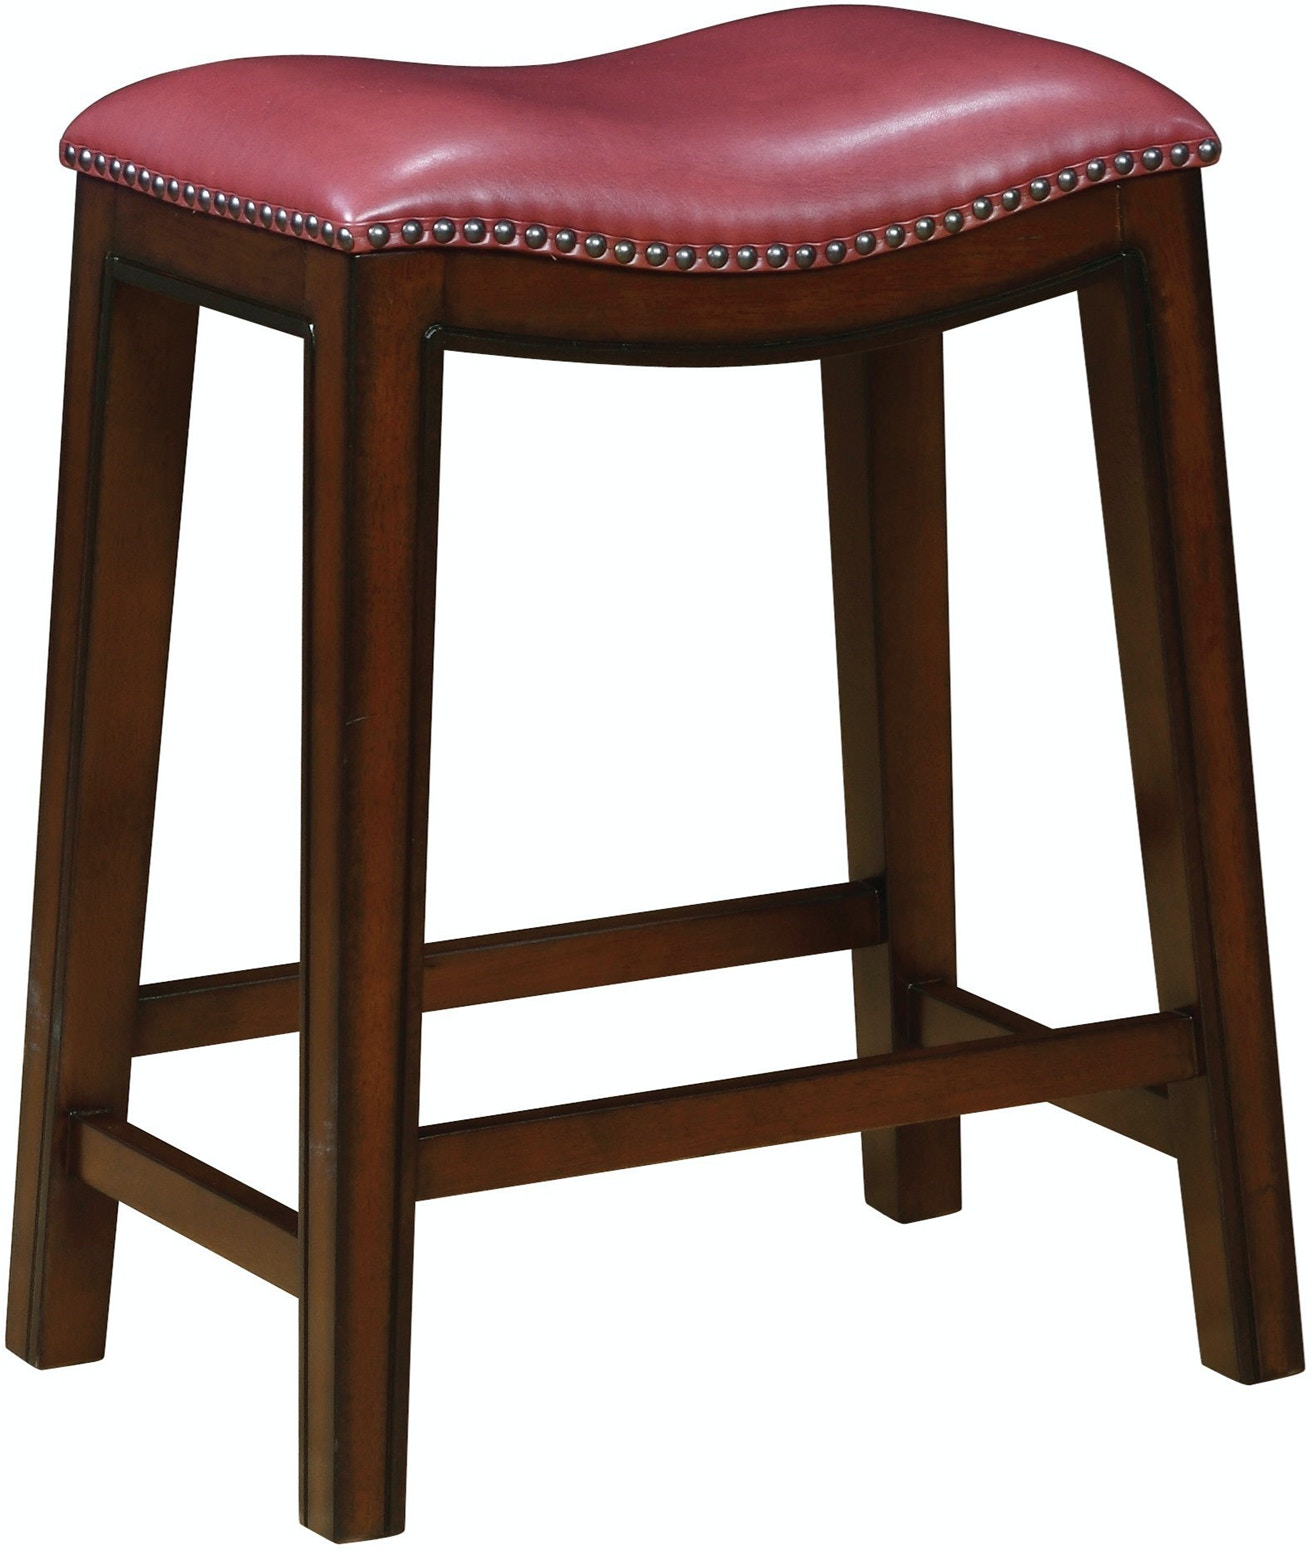 Coaster co of america bar and game room crispin counter for Coaster co of america furniture